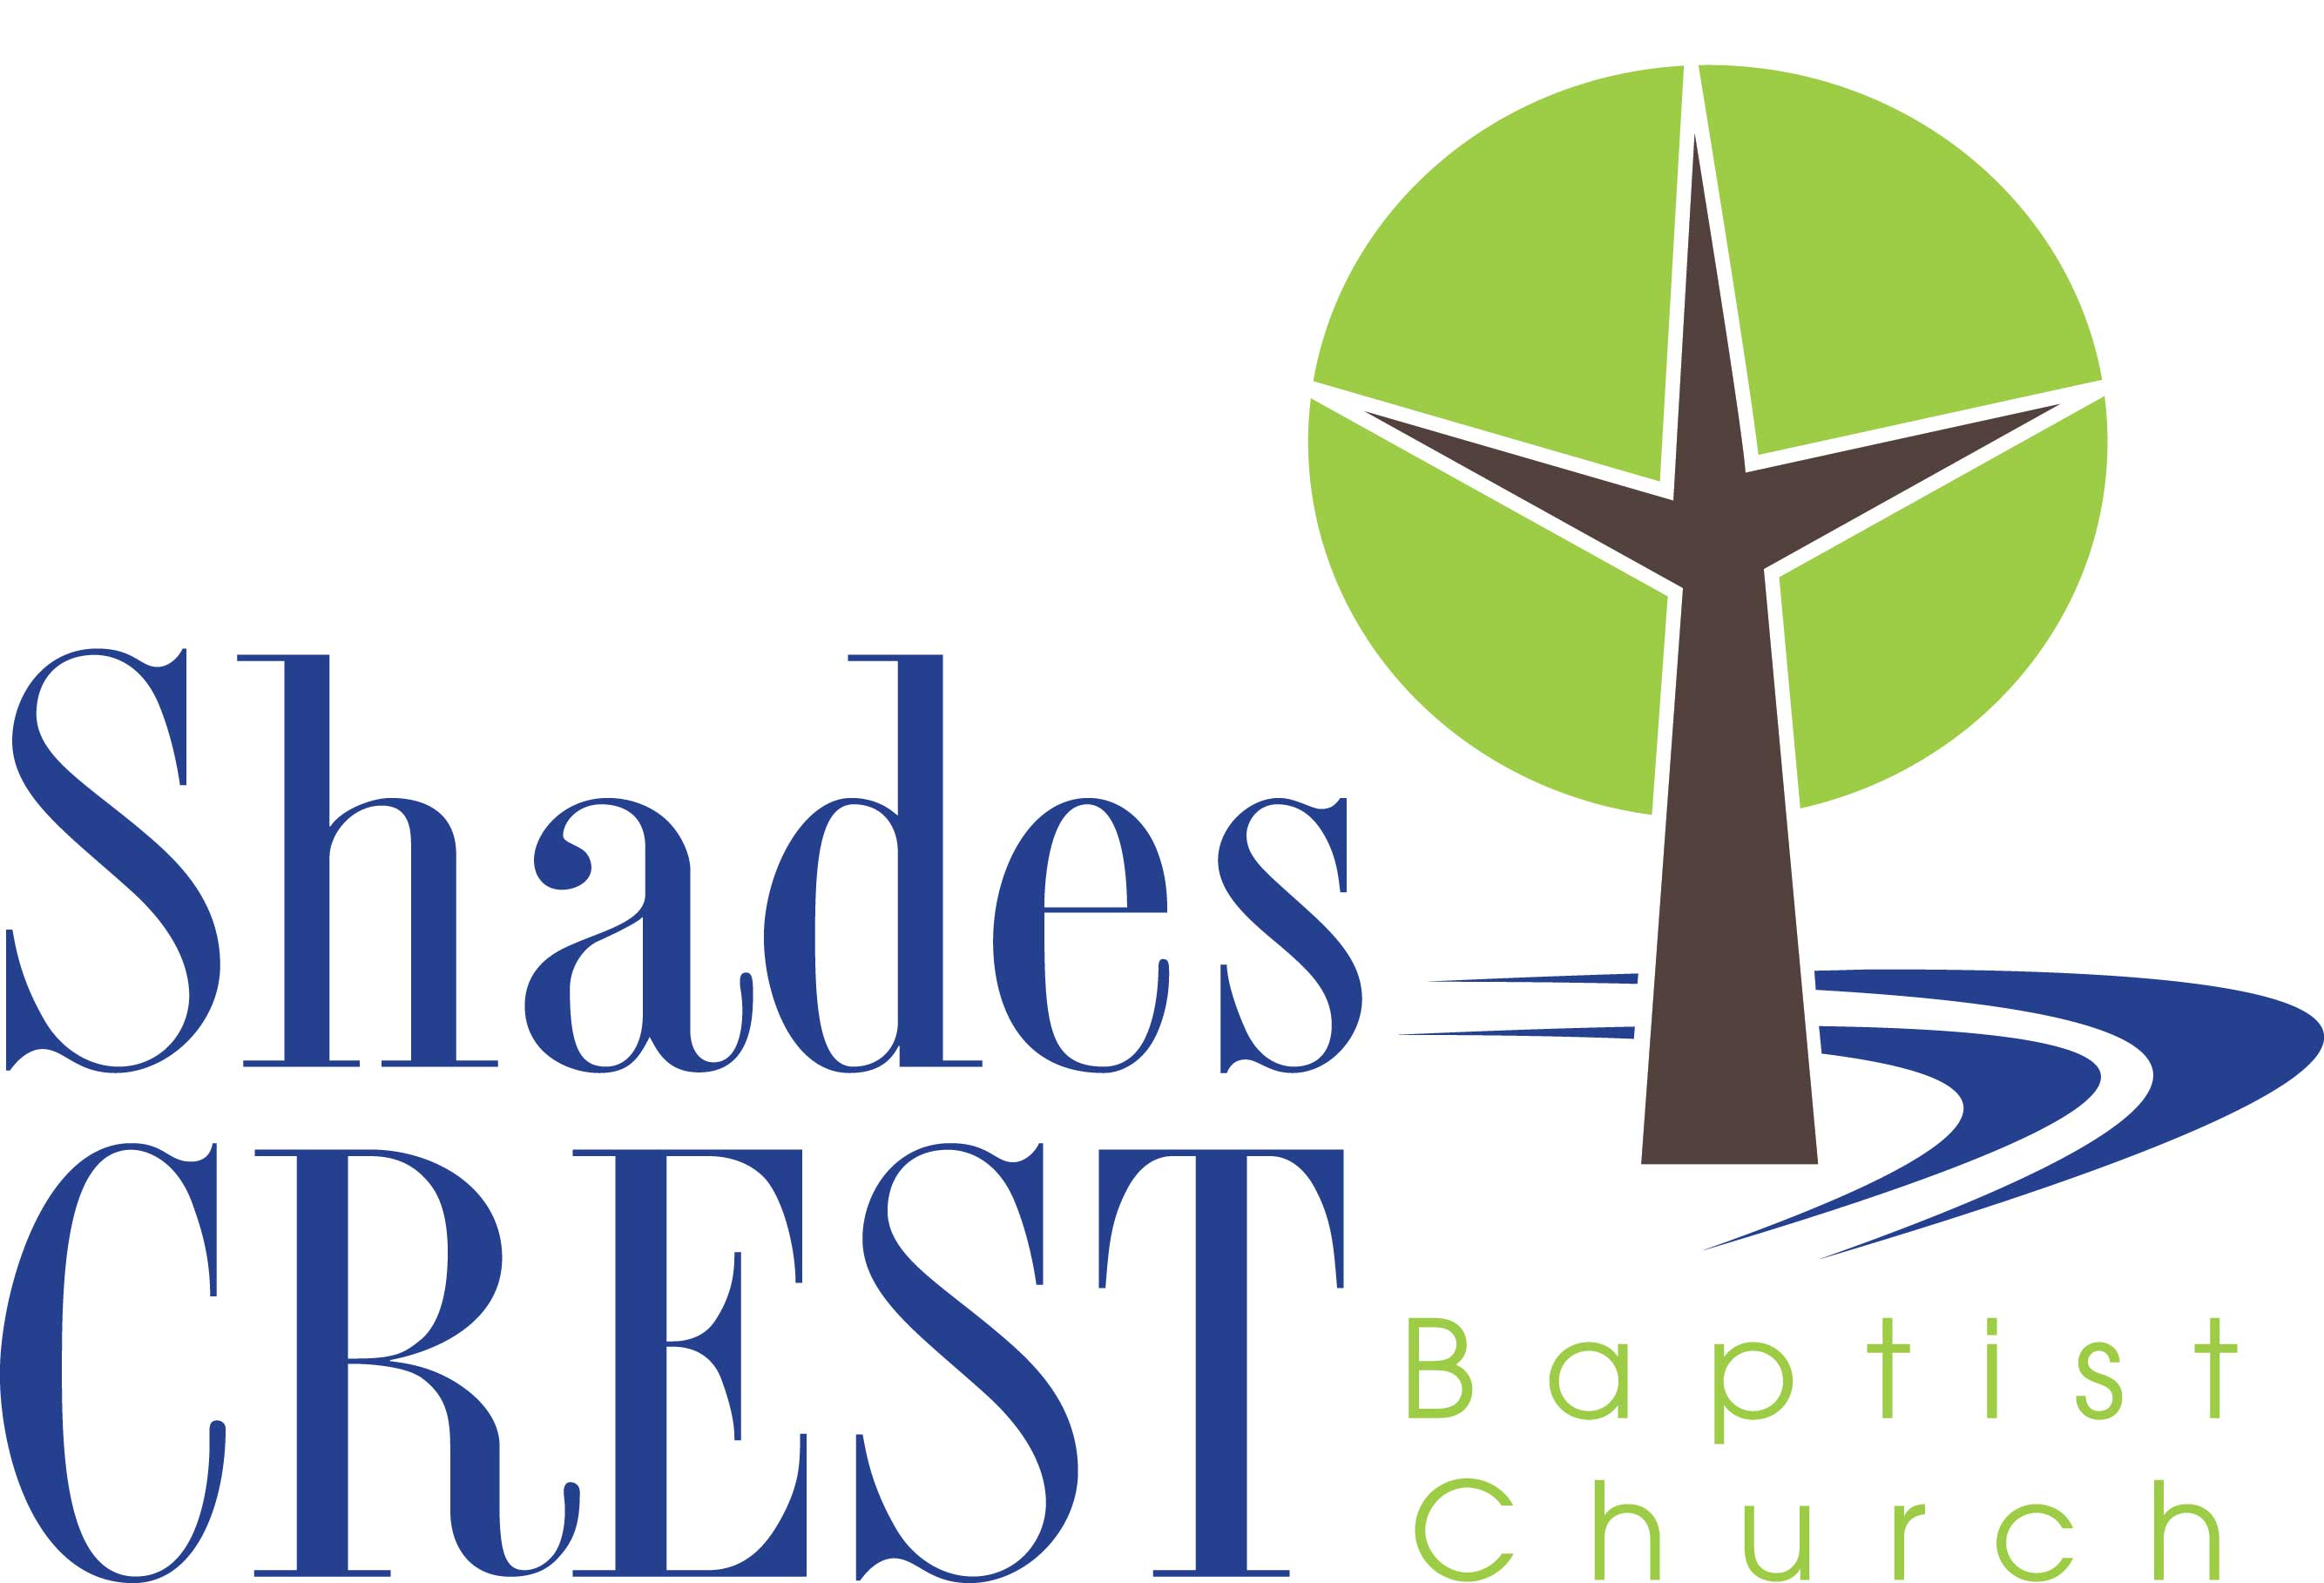 Shades Crest Baptist Church